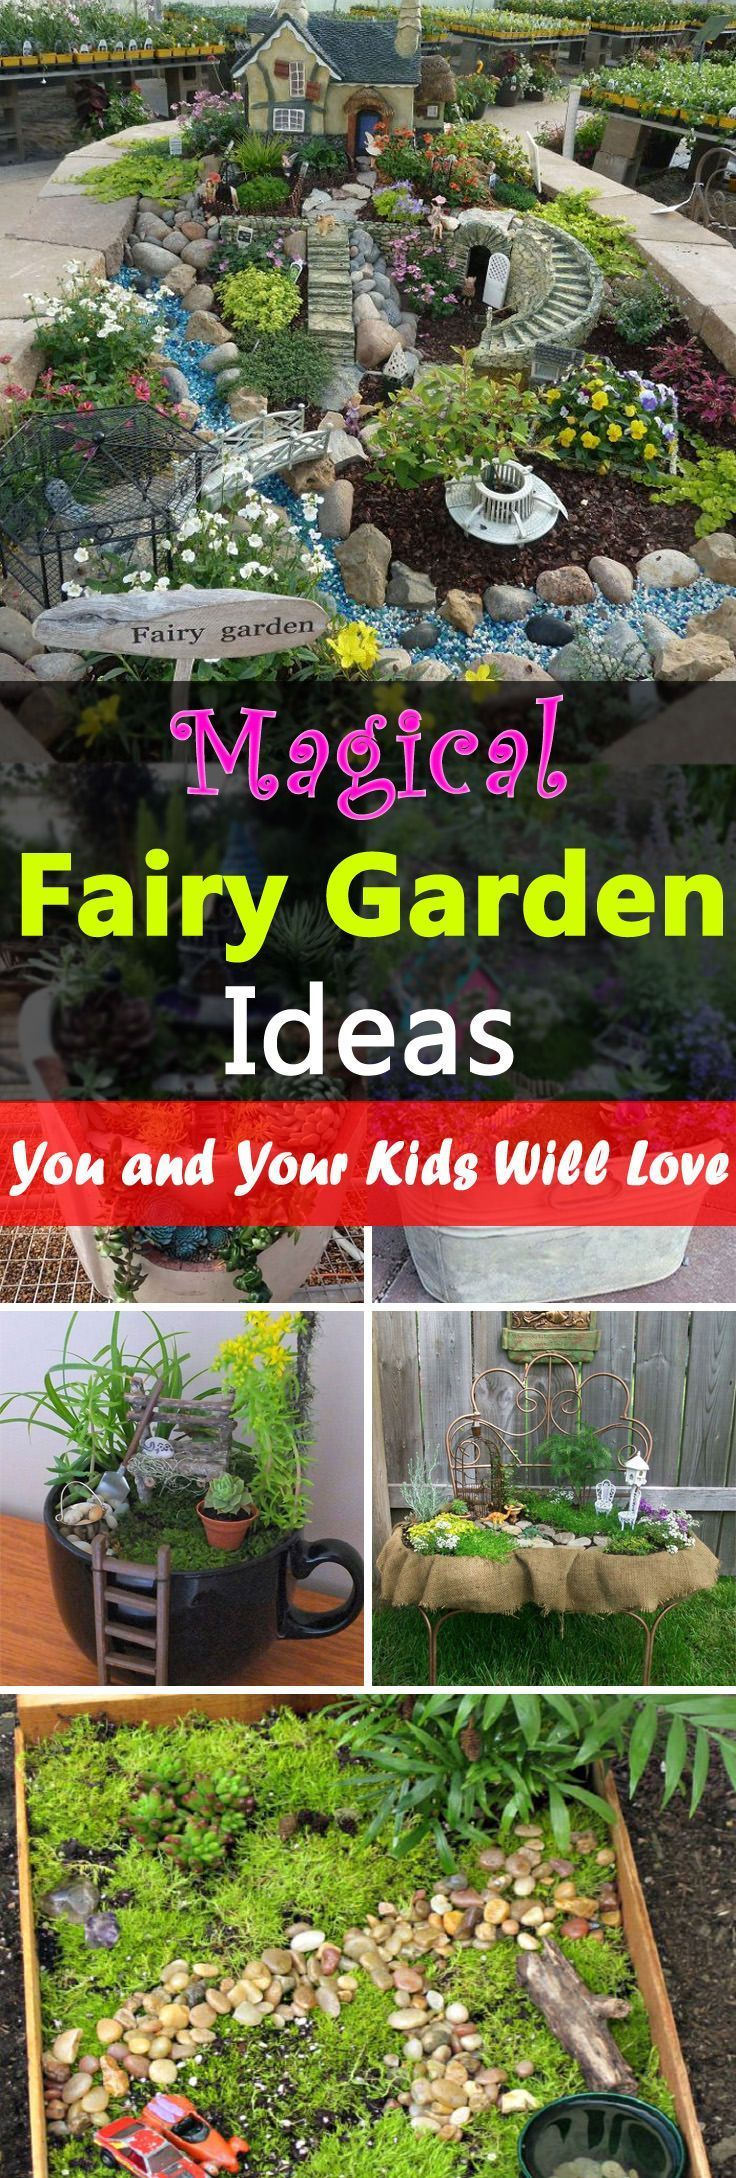 A cheerleading komoly sport 742 - 18 Magical Fairy Garden Ideas The Kids Will Love Them And You Too